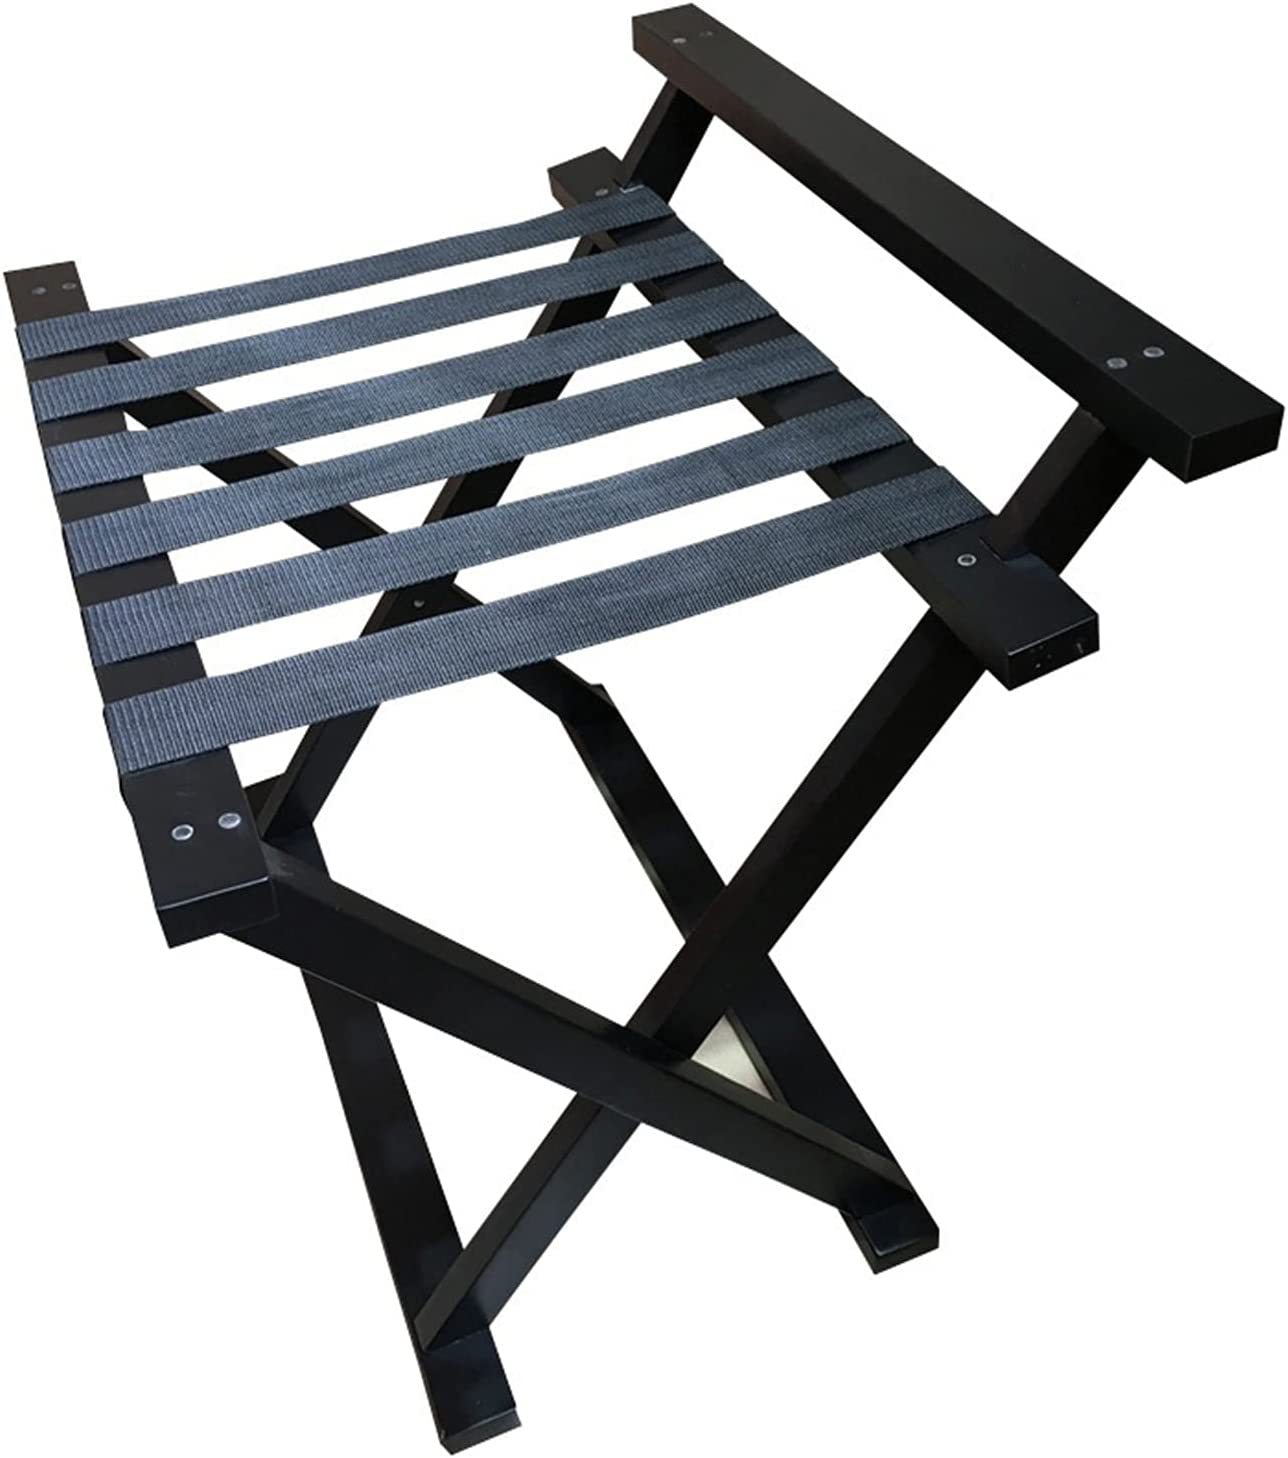 ZXFF Minneapolis Mall Compact Wooden Folding Luggage 5 N Rack Holder with Special price